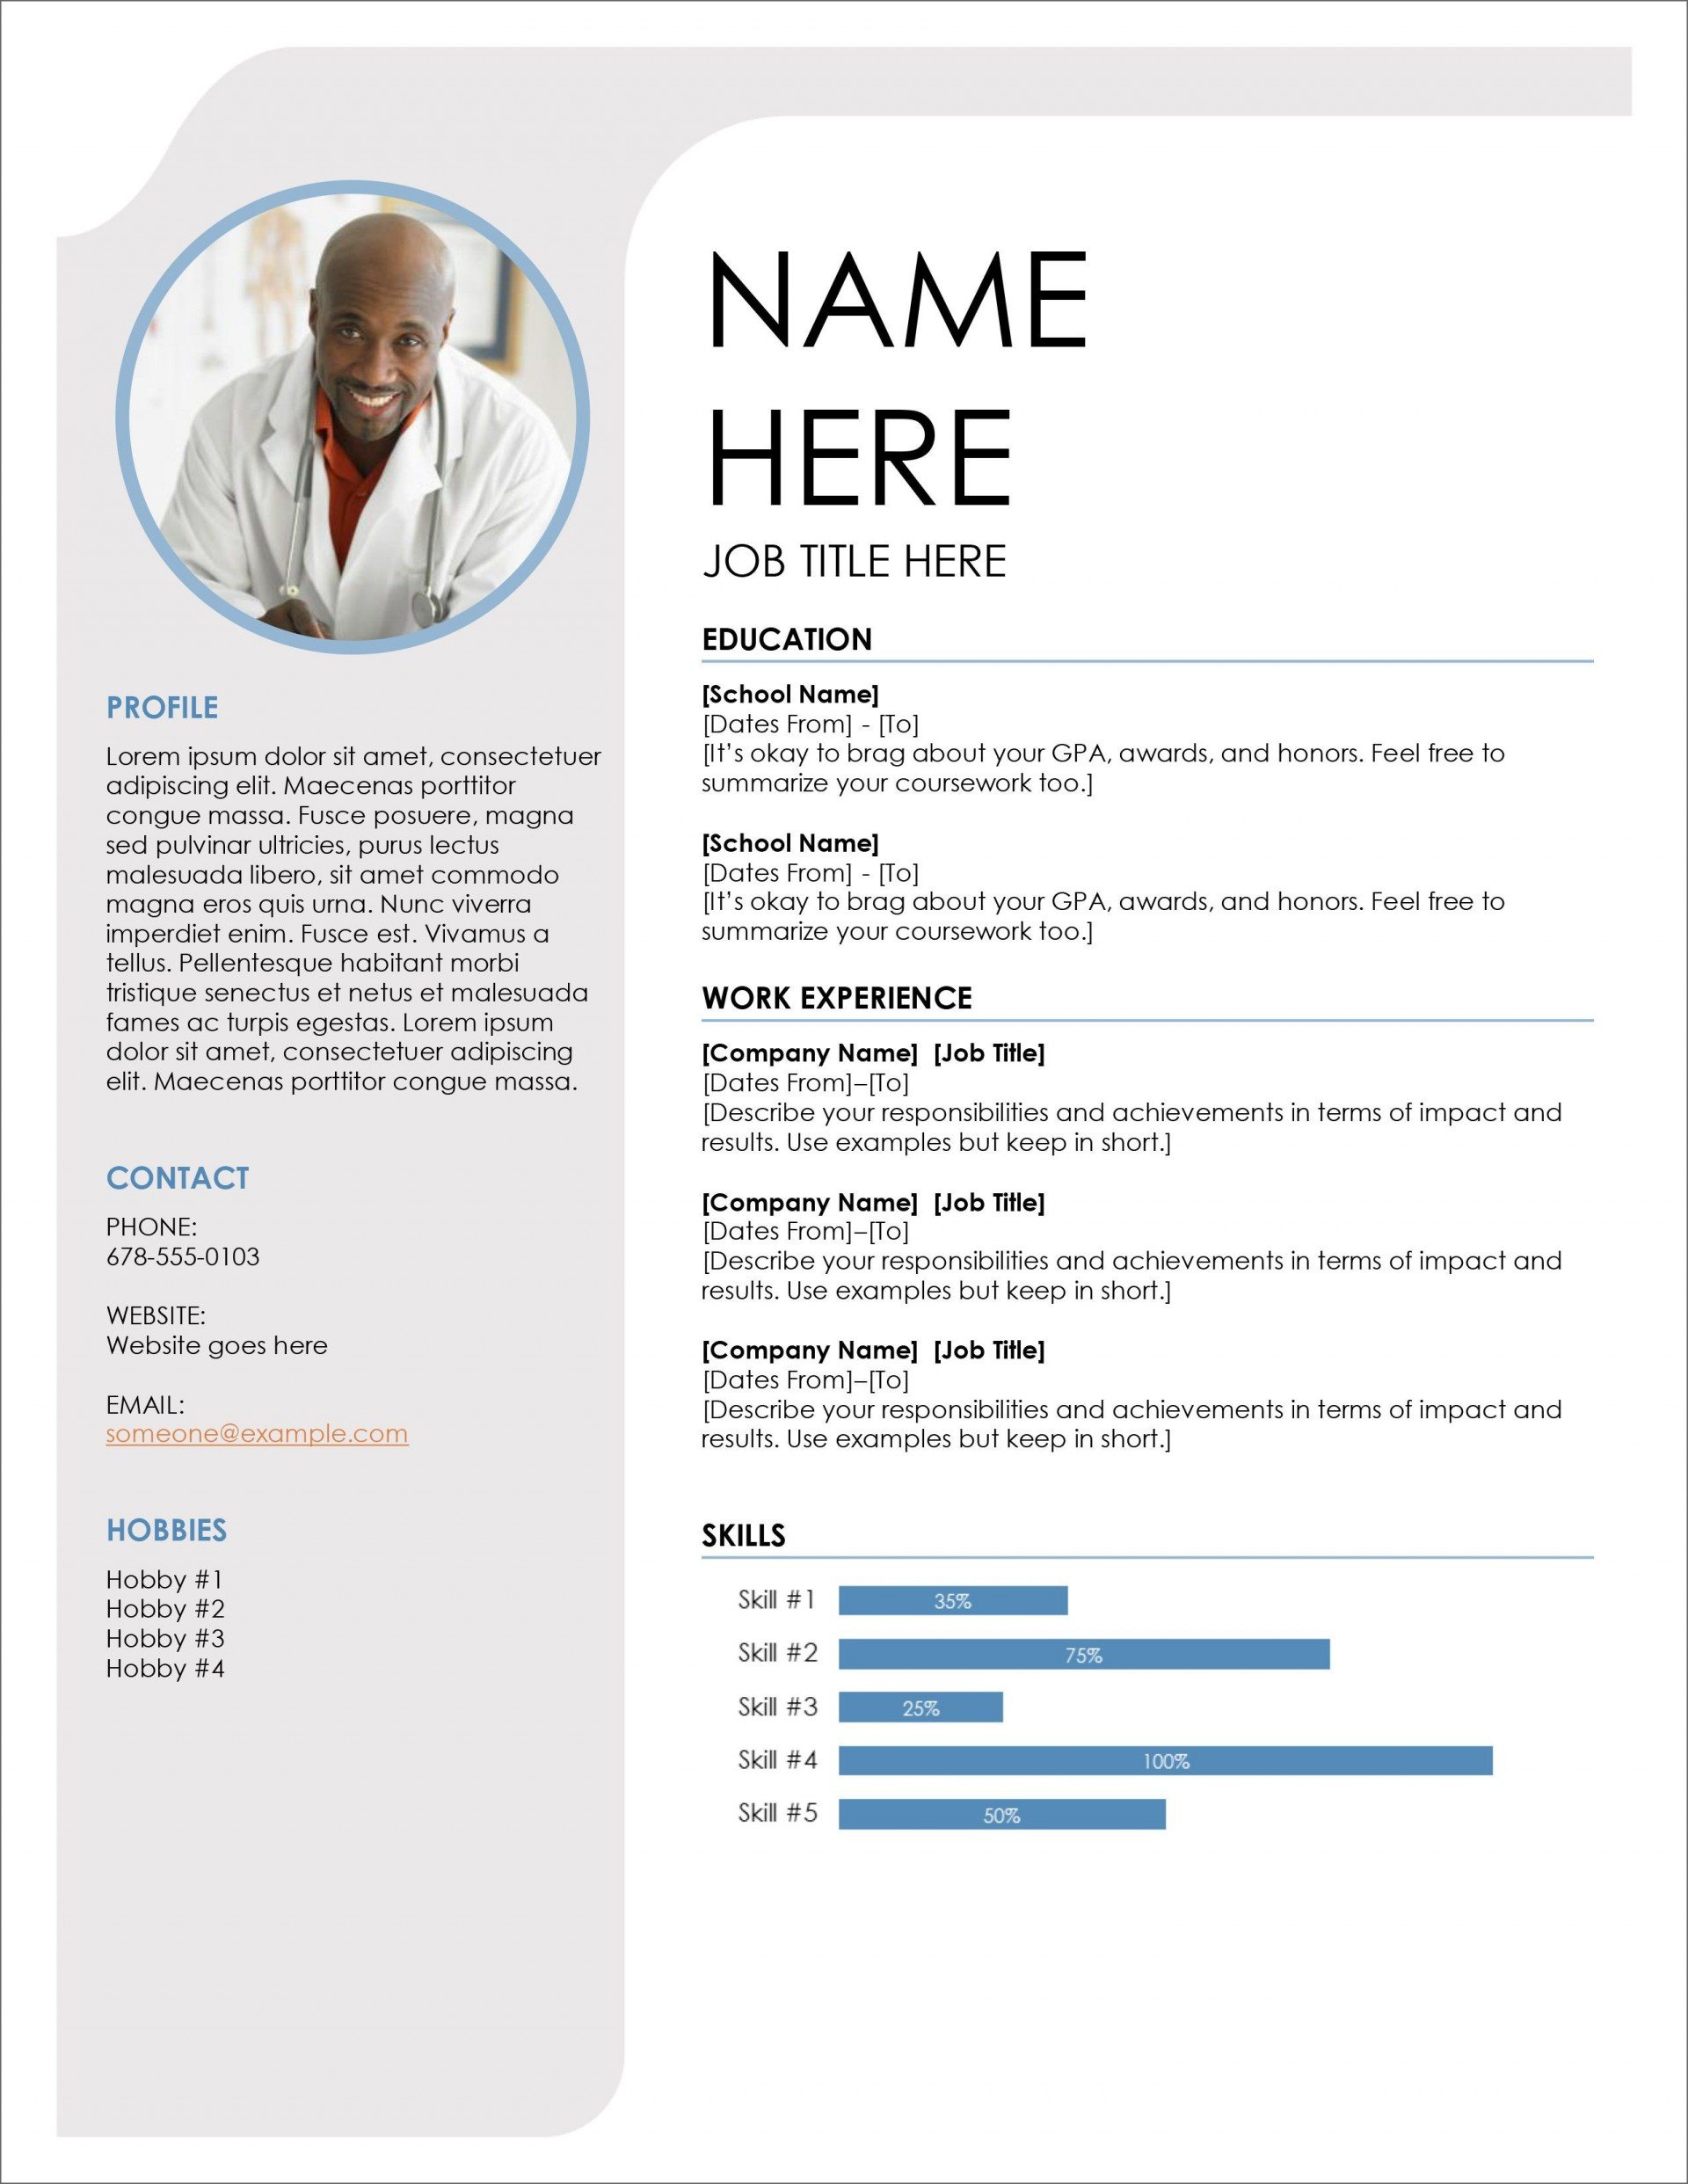 006 Surprising Resume Template For Microsoft Word 2007 Free Image  Download Office1920